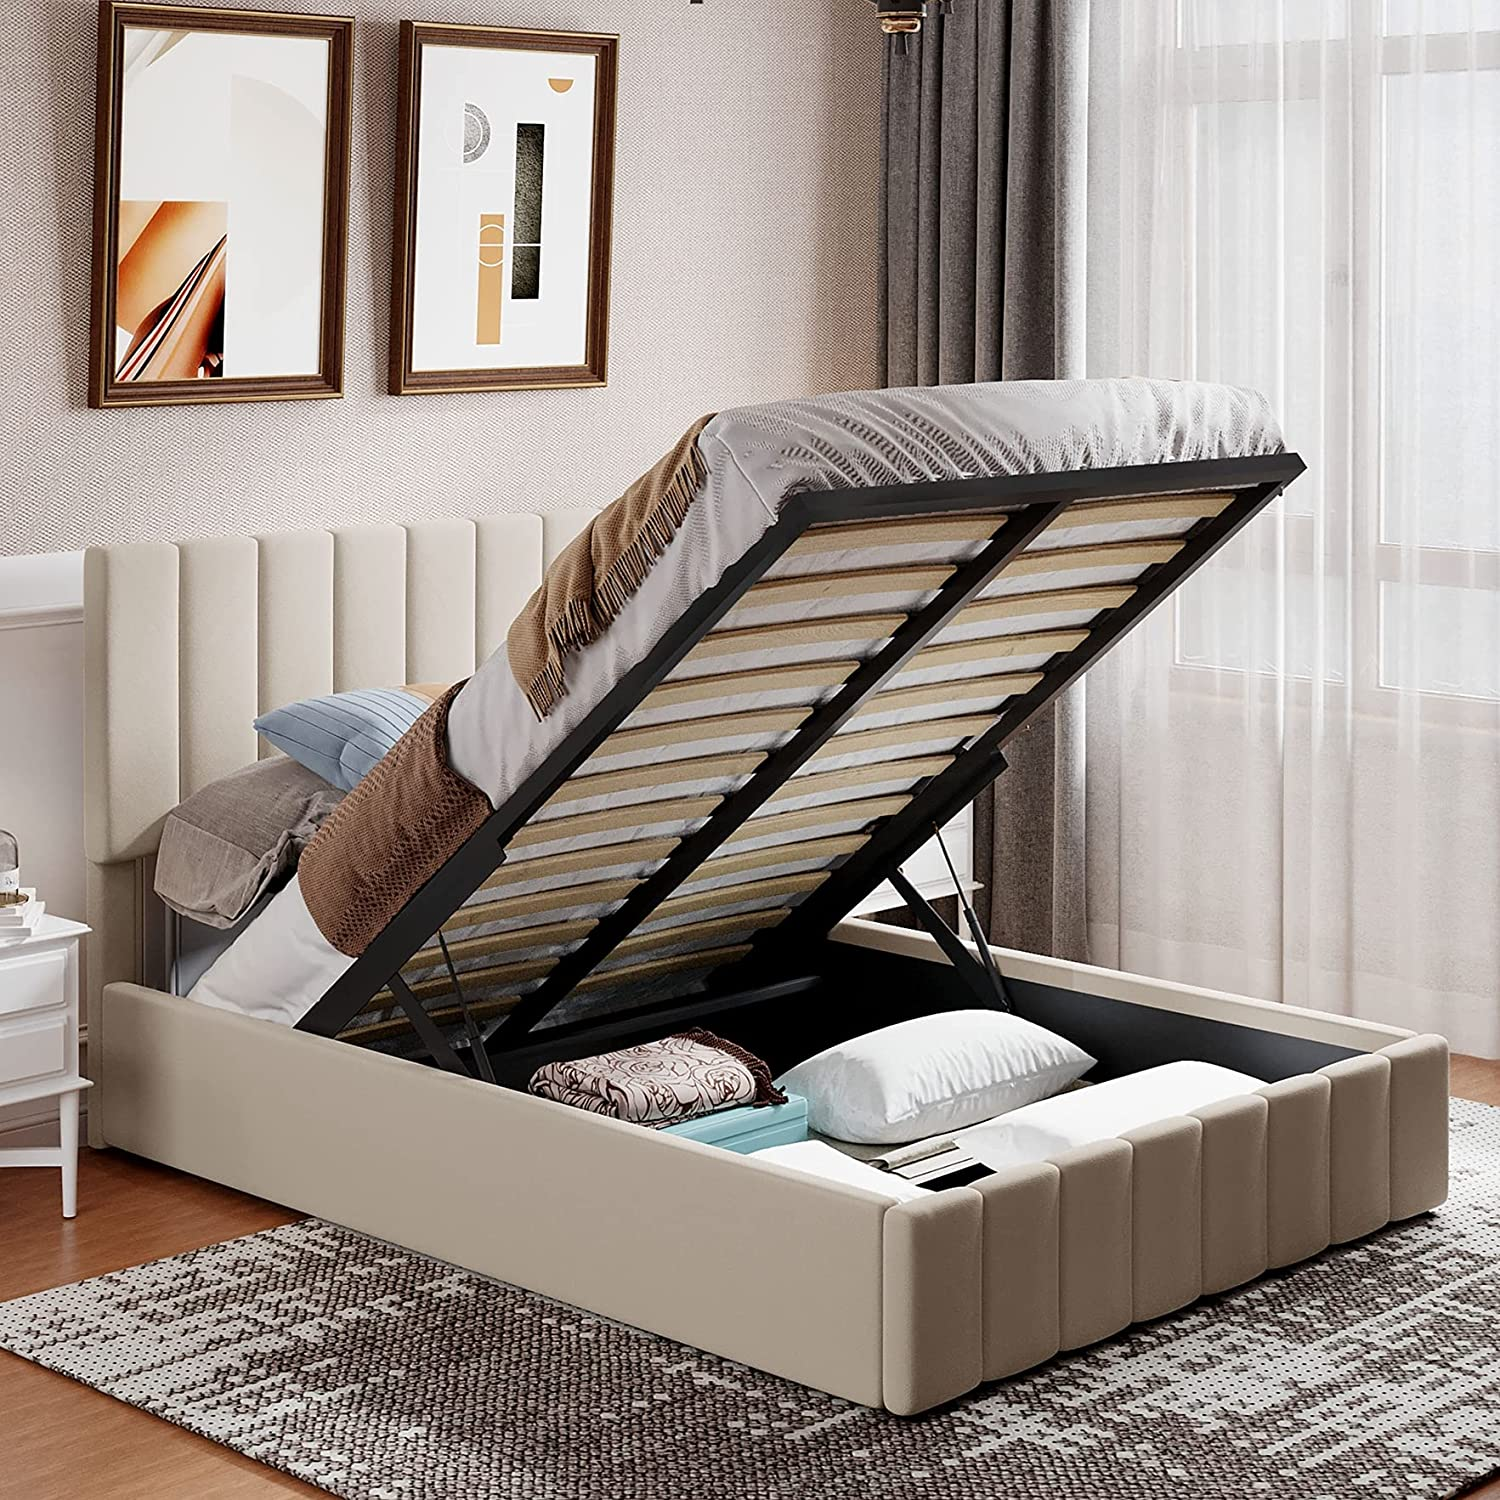 Upholstered Full Bed Frame Max 42% OFF with Size Pl Underneath Time sale Storage